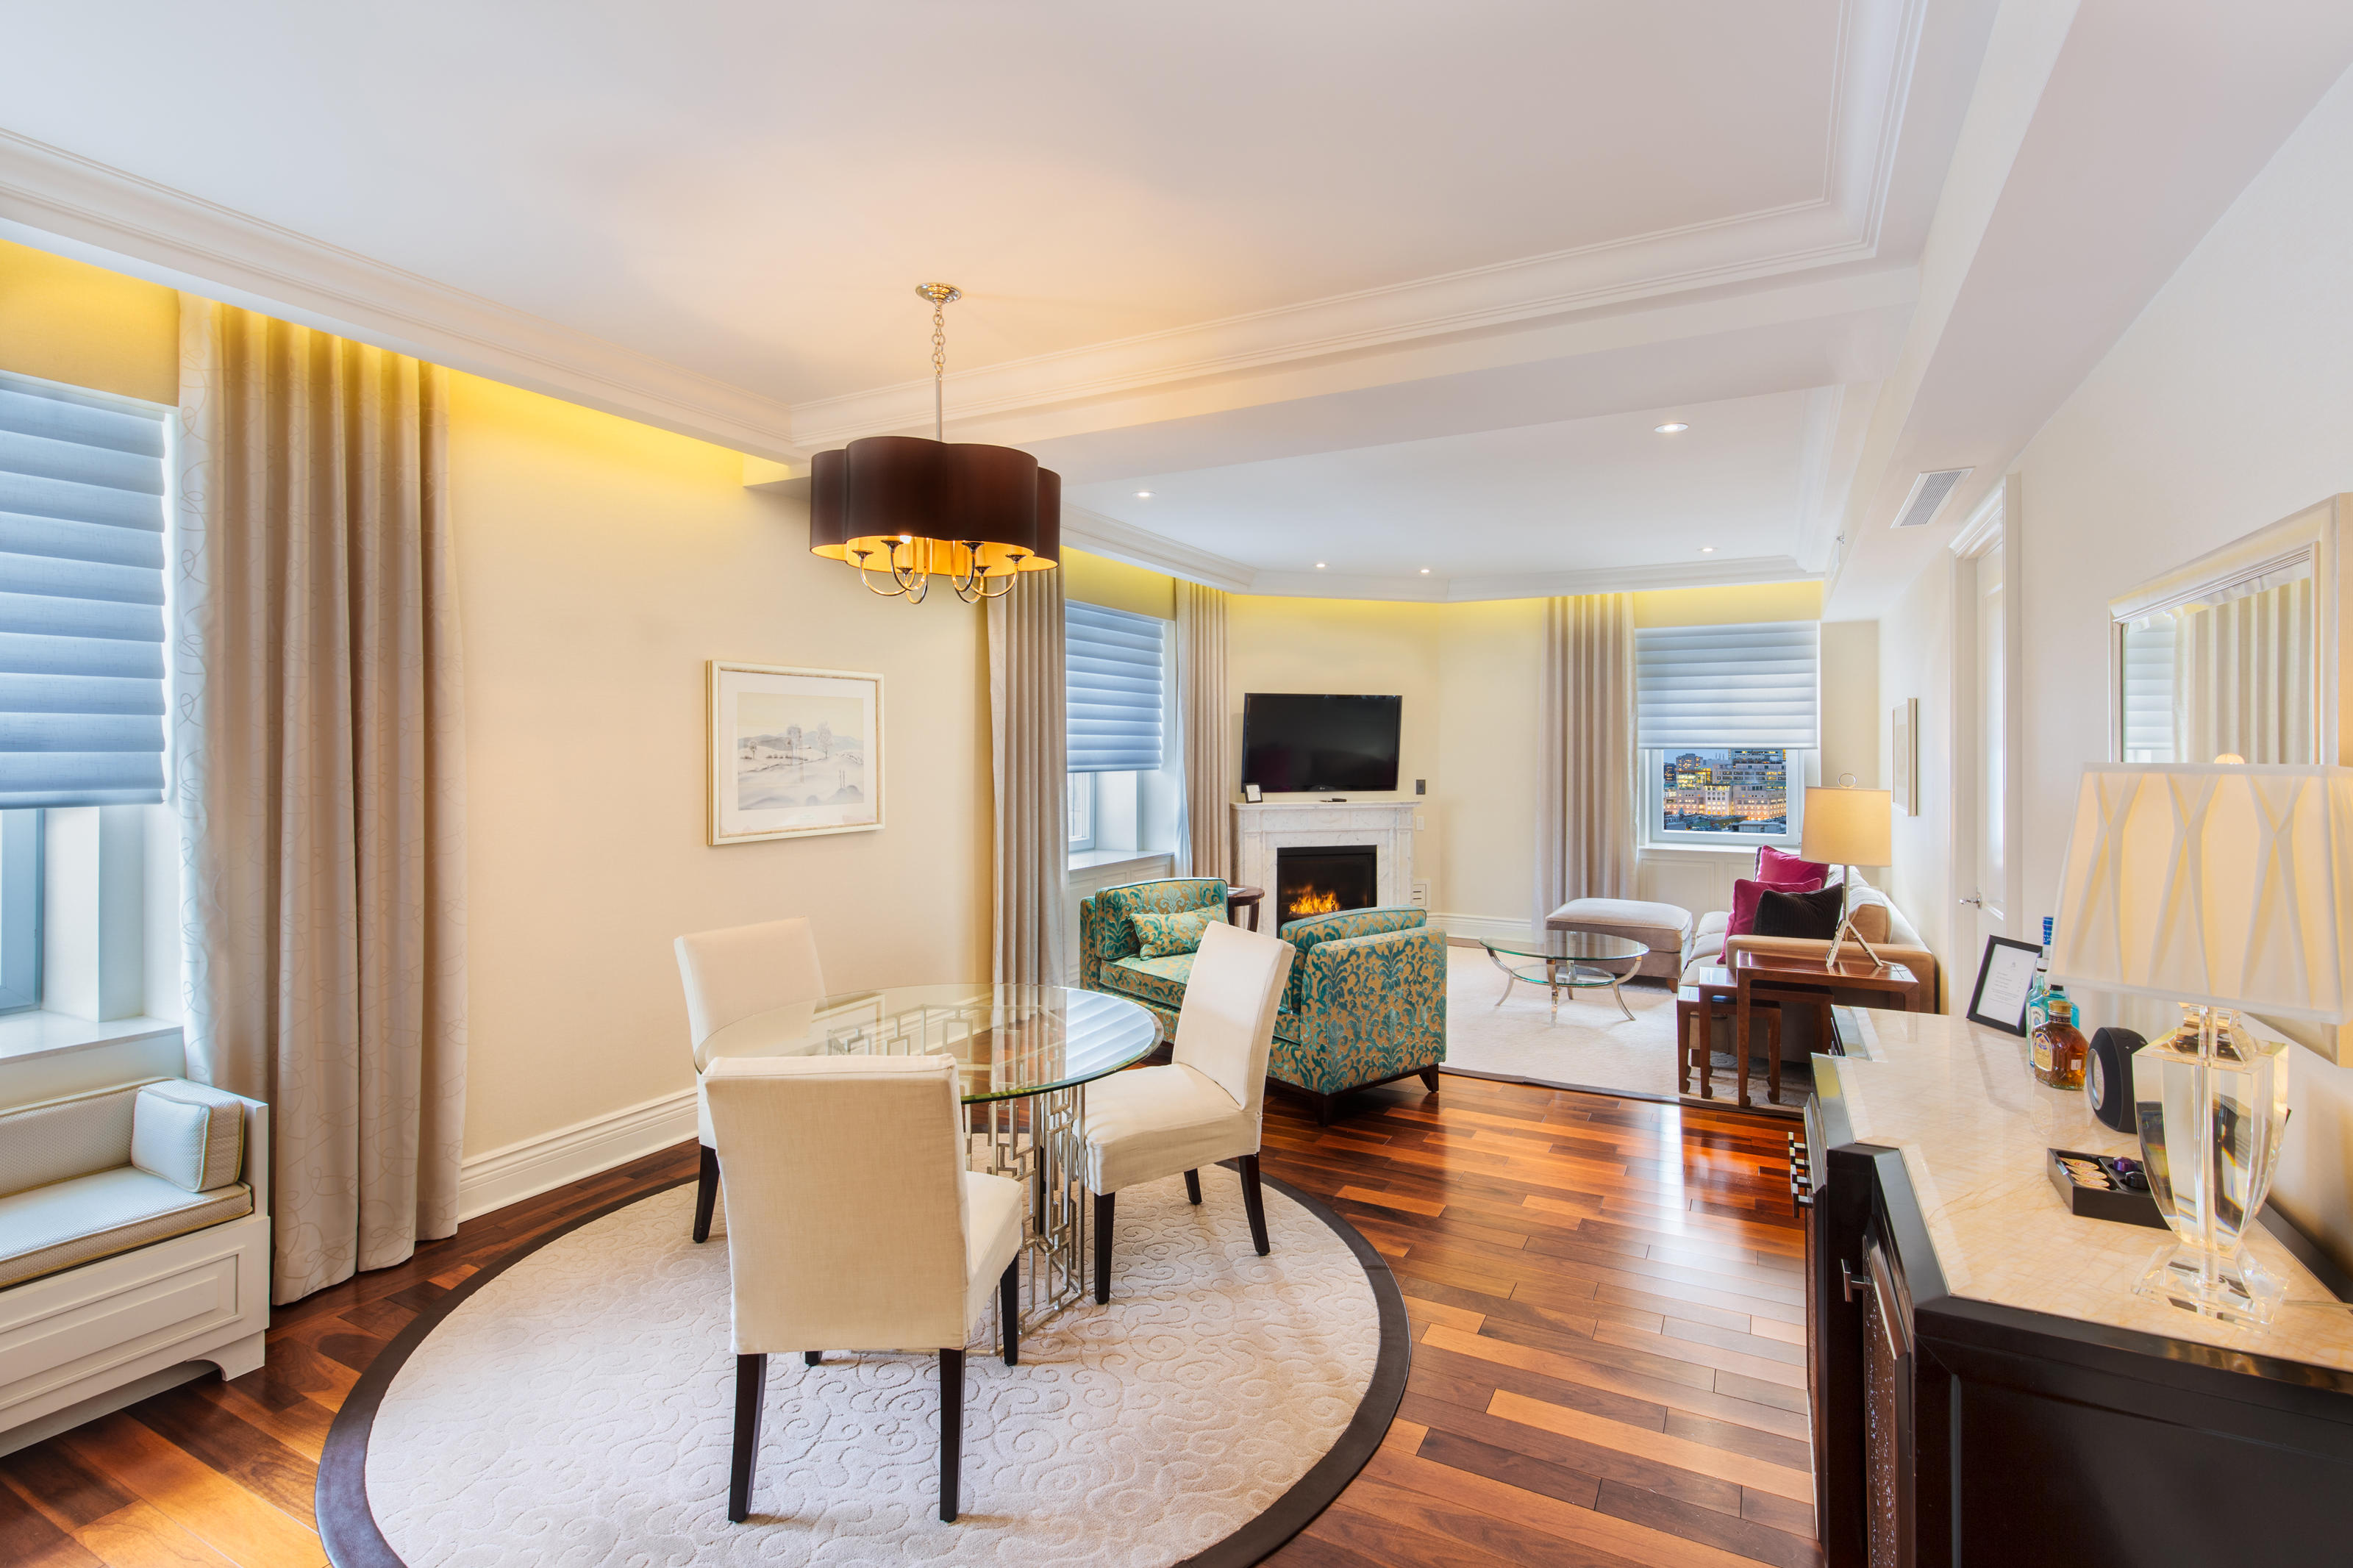 The Ritz-Carlton, Montreal à Montreal: Our exclusive upper-level Executive Suites are an unrivaled study in residential comfort, with both city and garden views. Featuring an expansive living area with an adjoining fi replace, these palatial suites also off er a separate dining area that seats up to four guests. The marble bathroom includes a heated floor, a soothing shower and luxurious Asprey bath products.